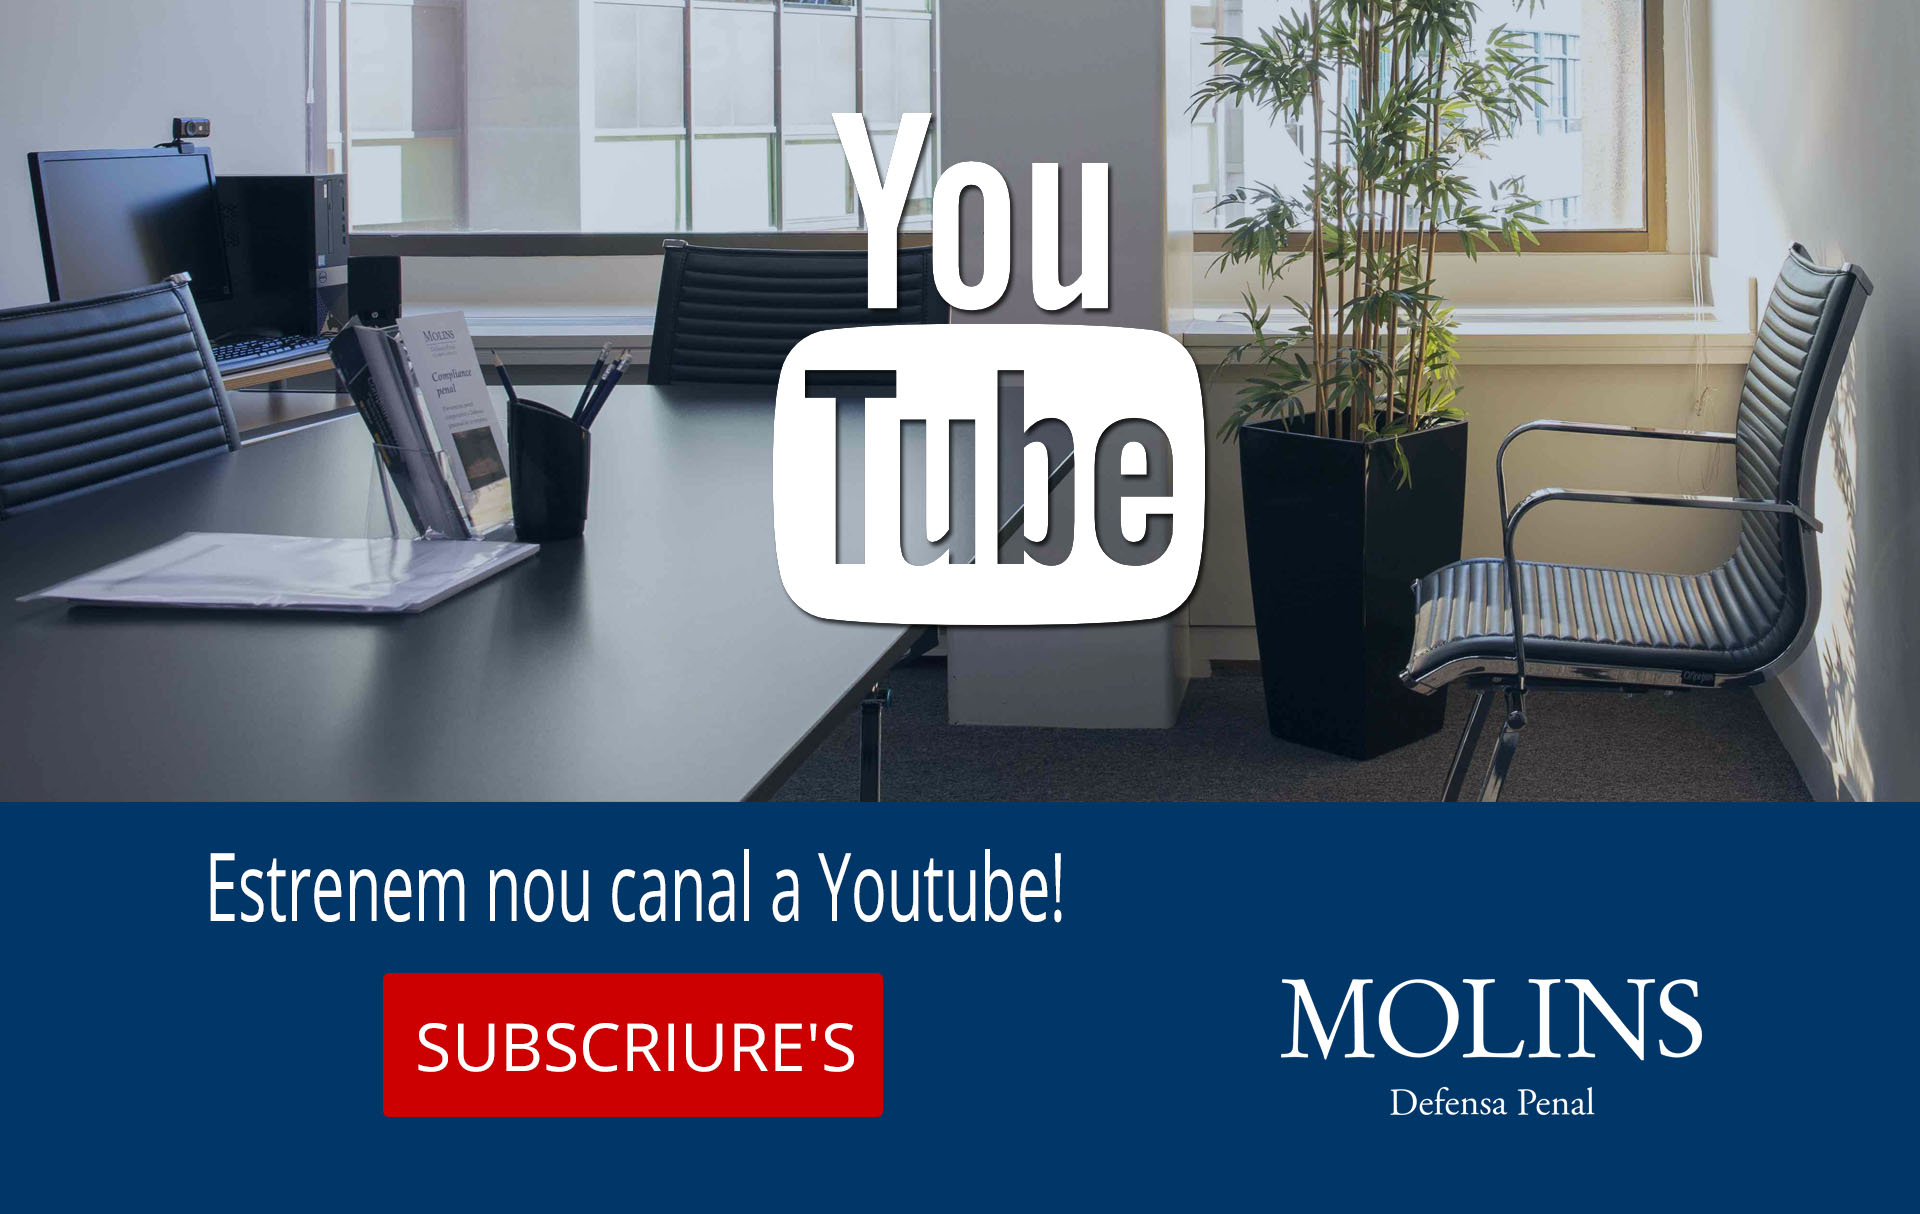 Canal de Youtube a Molins Defensa Penal